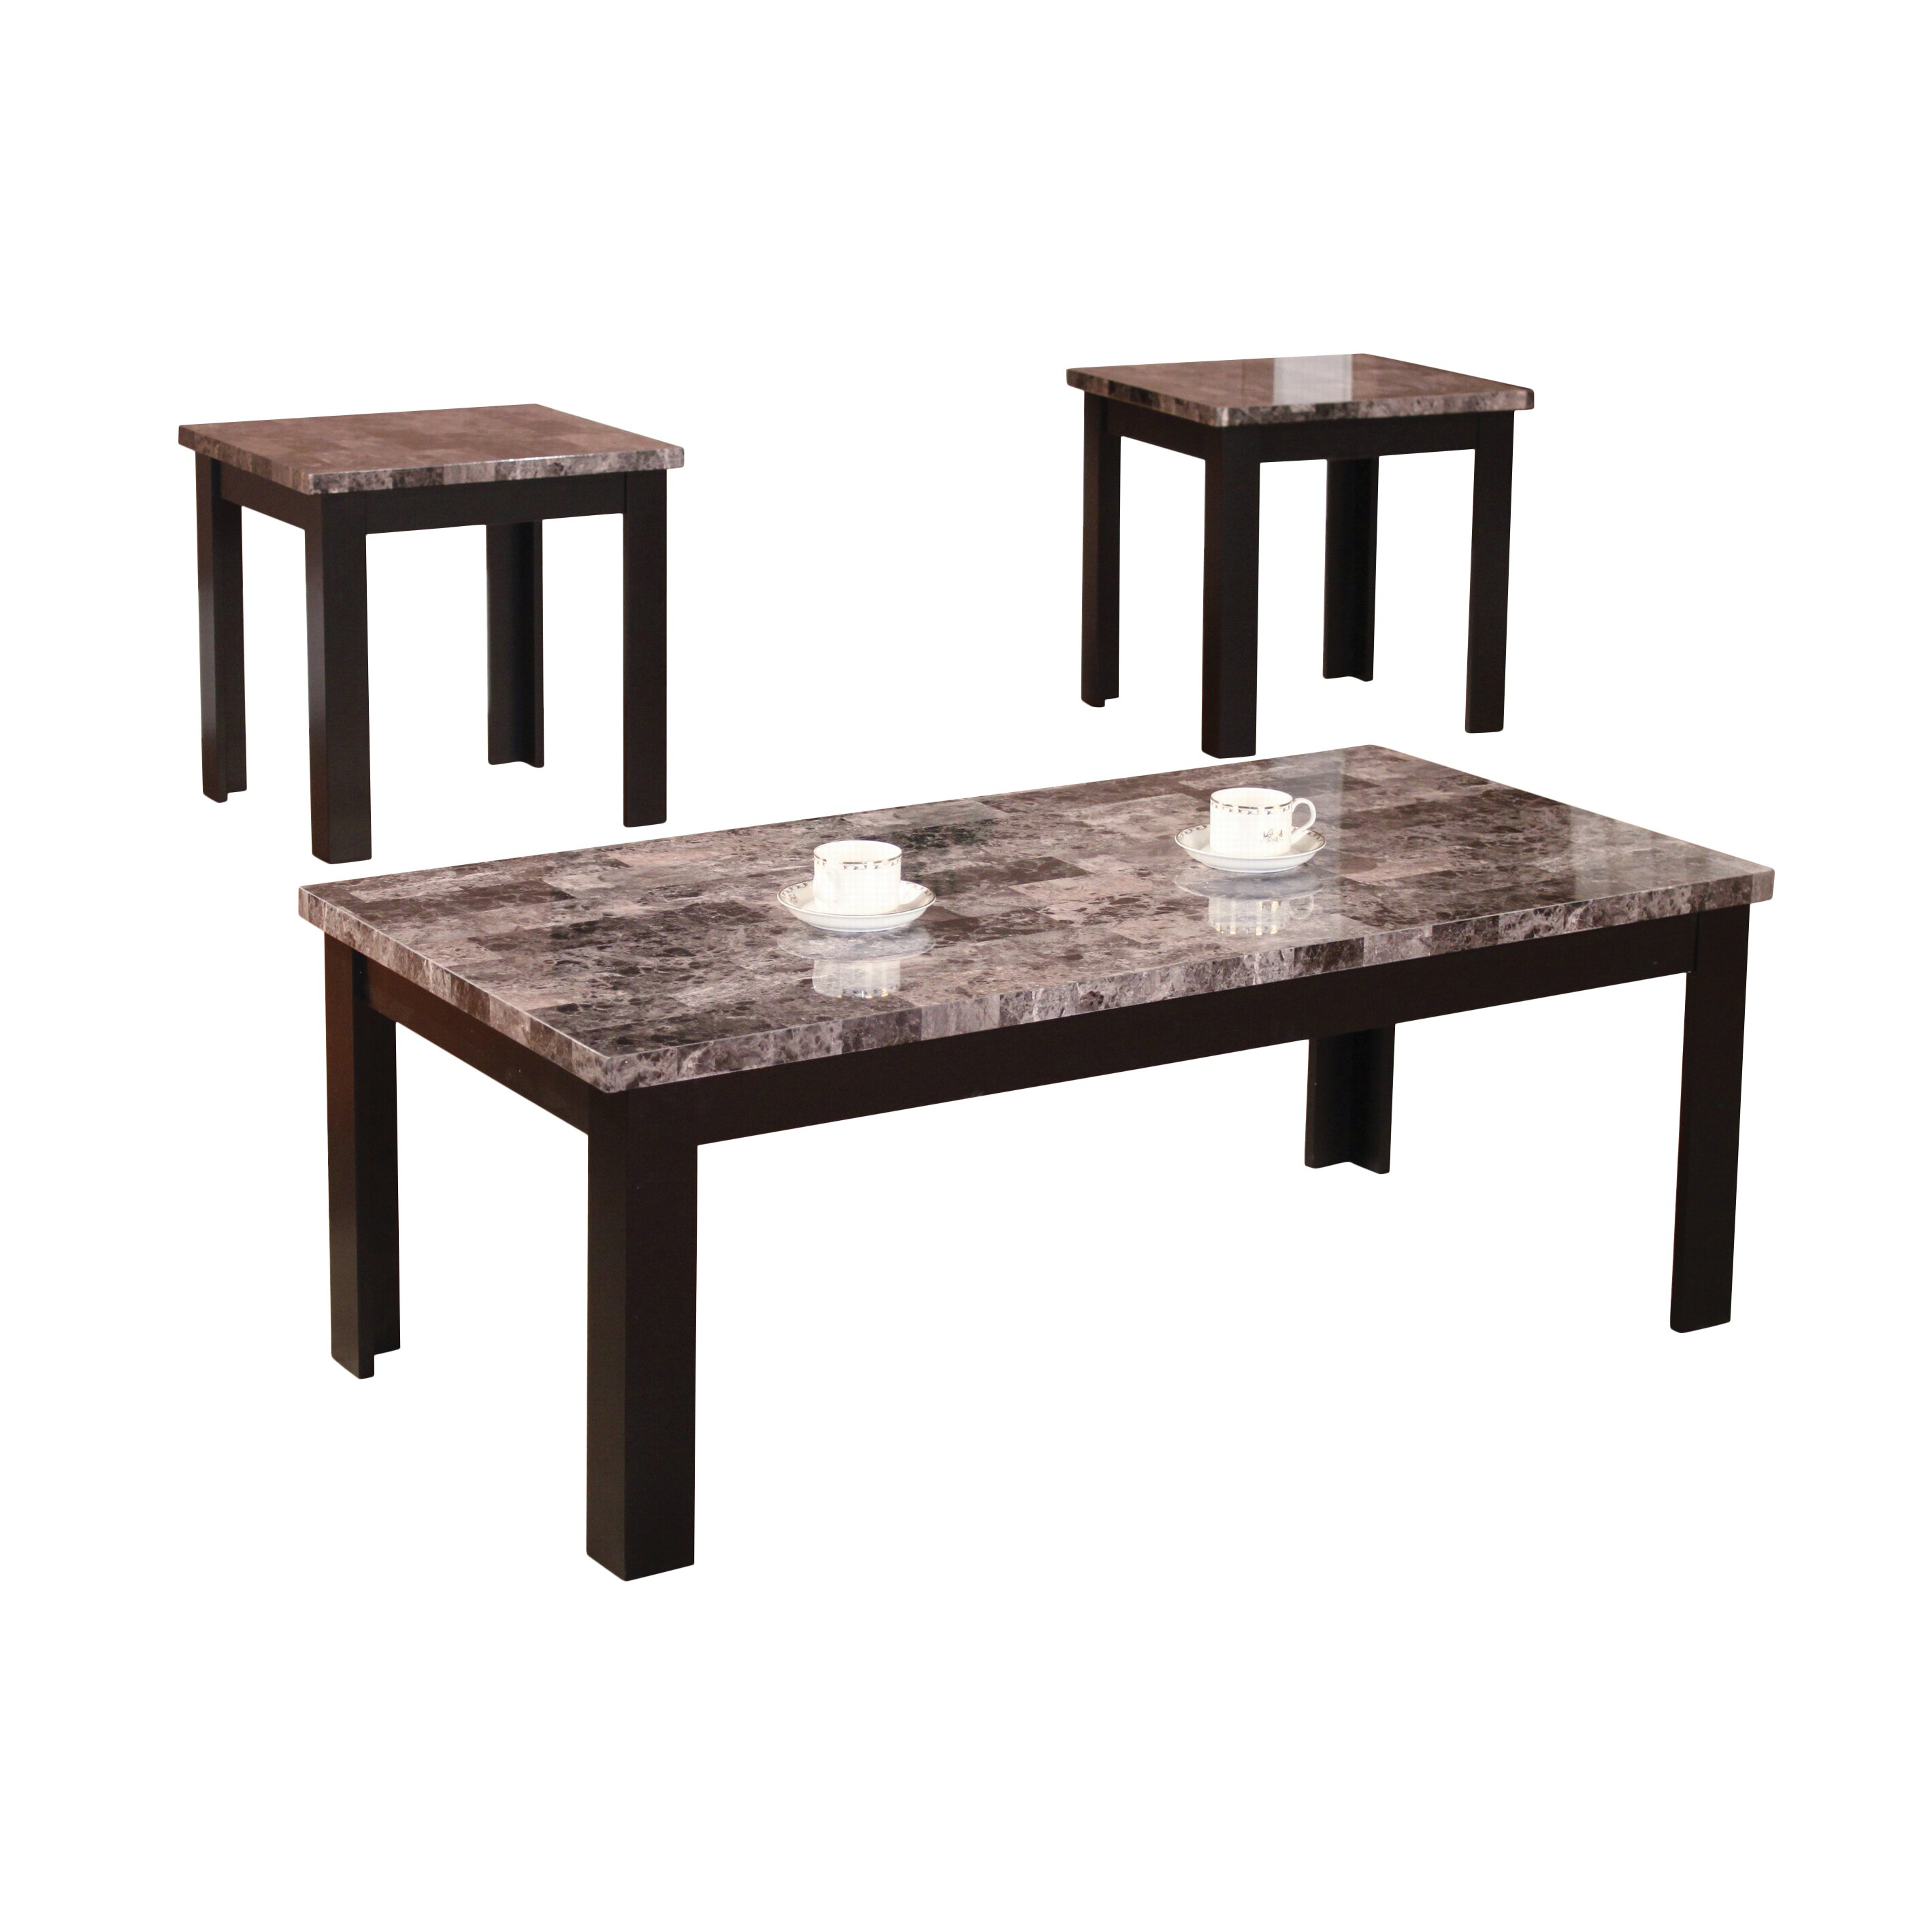 Andover mills cecil marble top 3 piece coffee table set reviews 3 set coffee tables